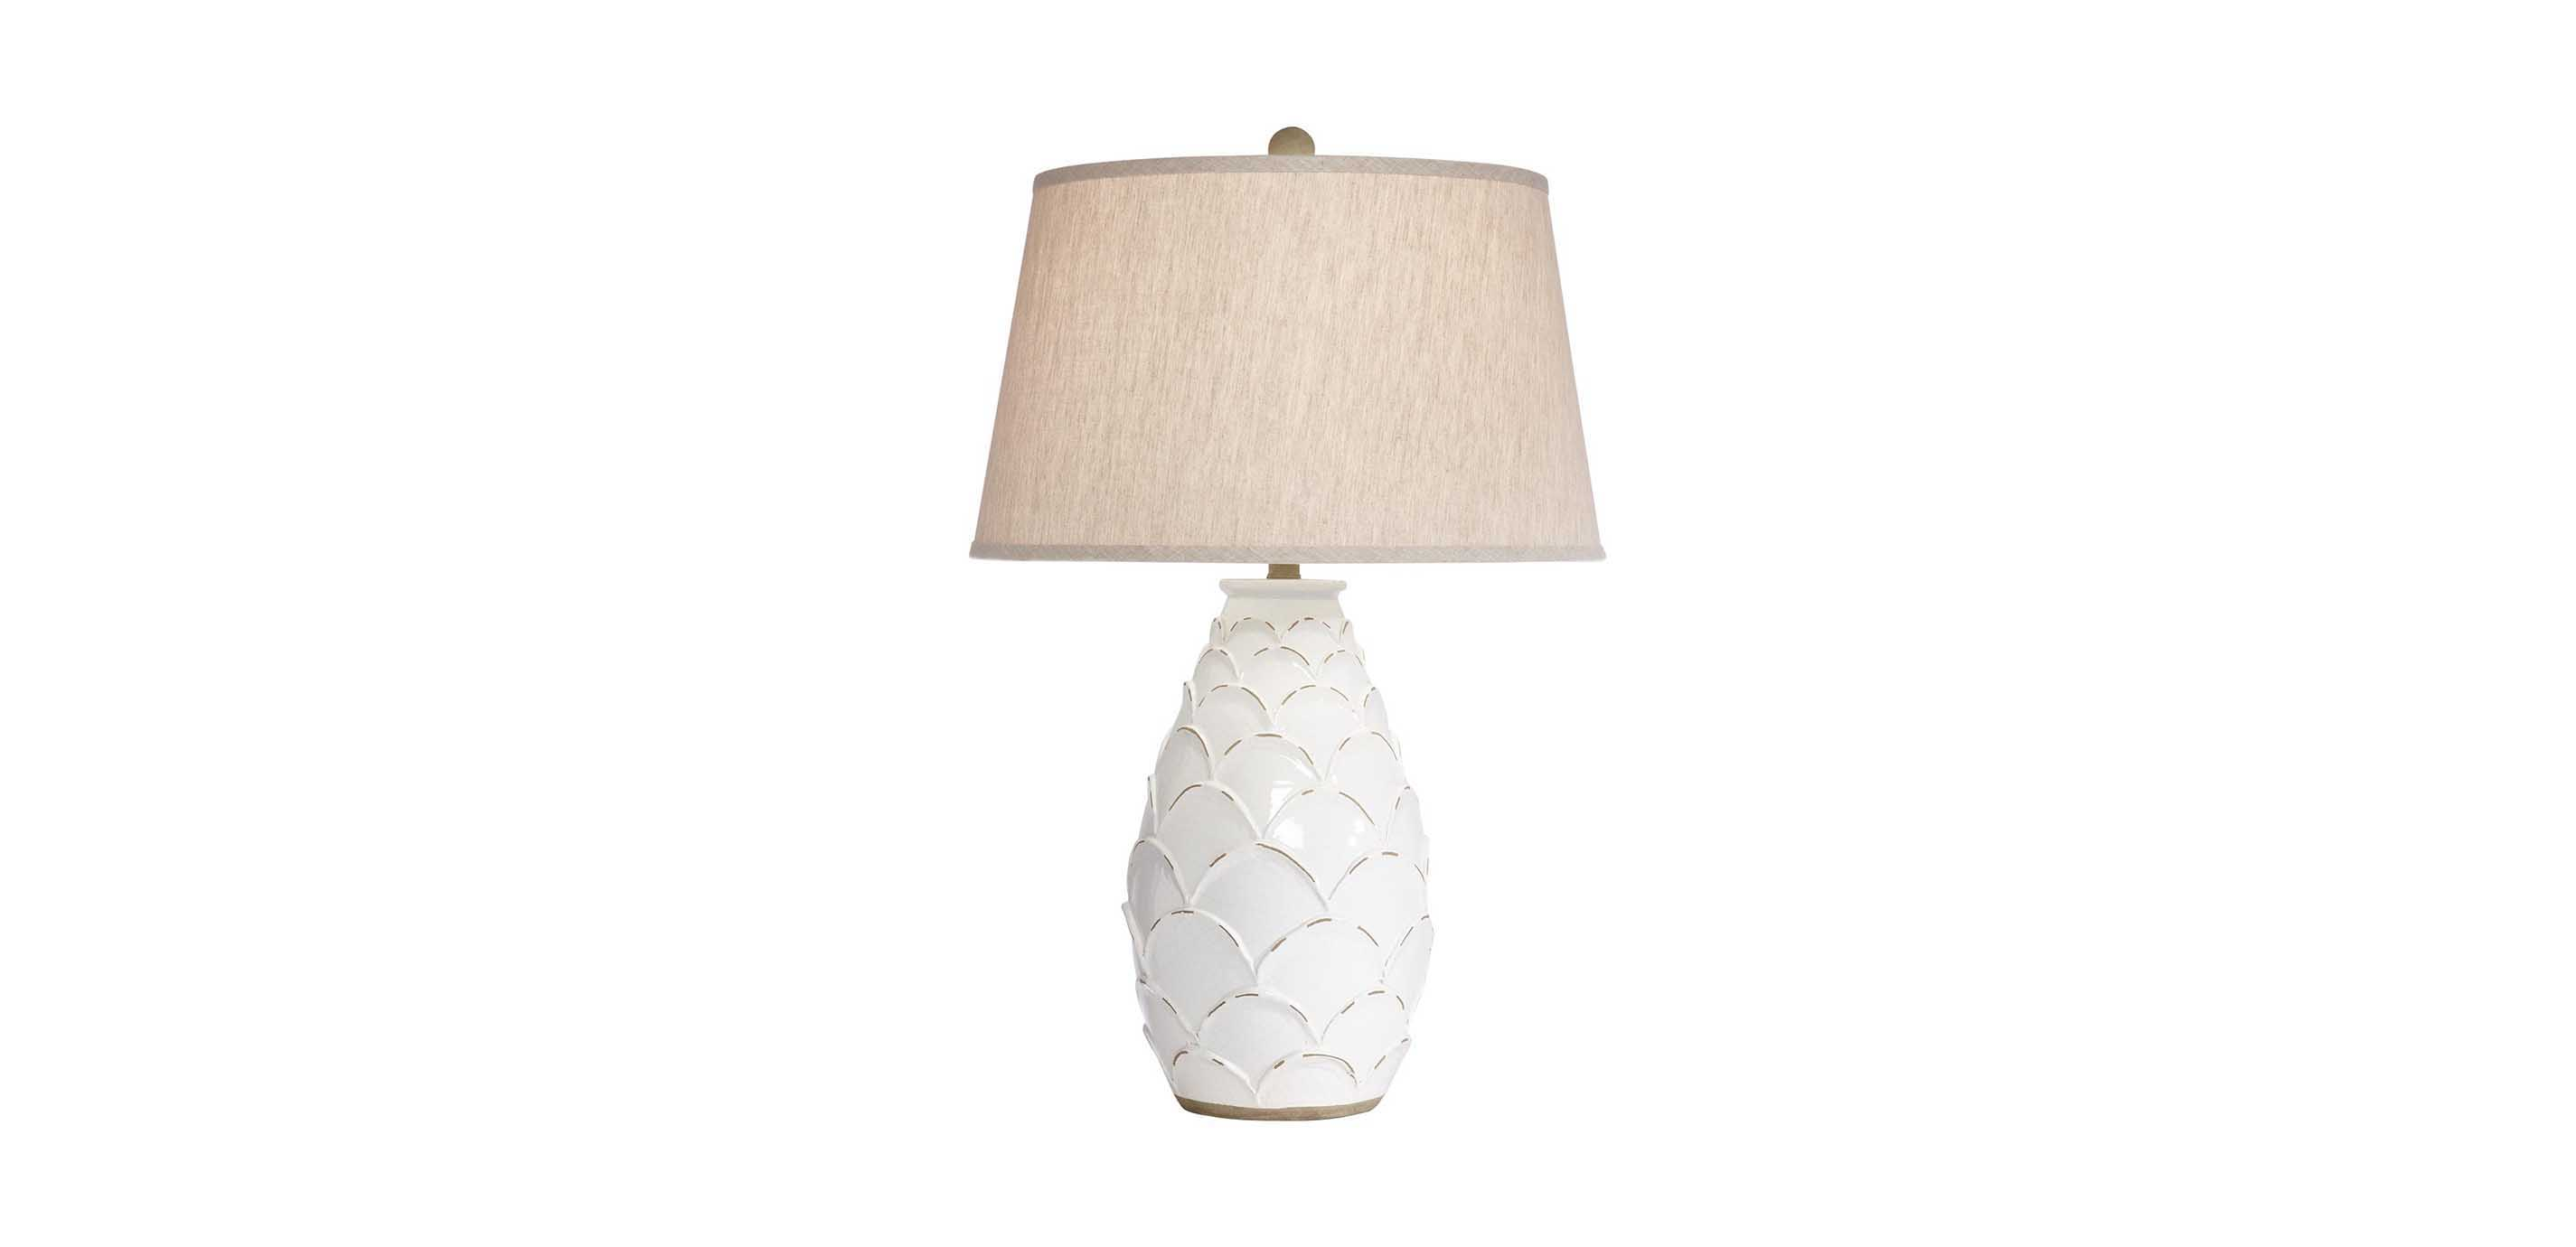 High Quality Images Abbey Terracotta Table Lamp , , Large_gray Gallery